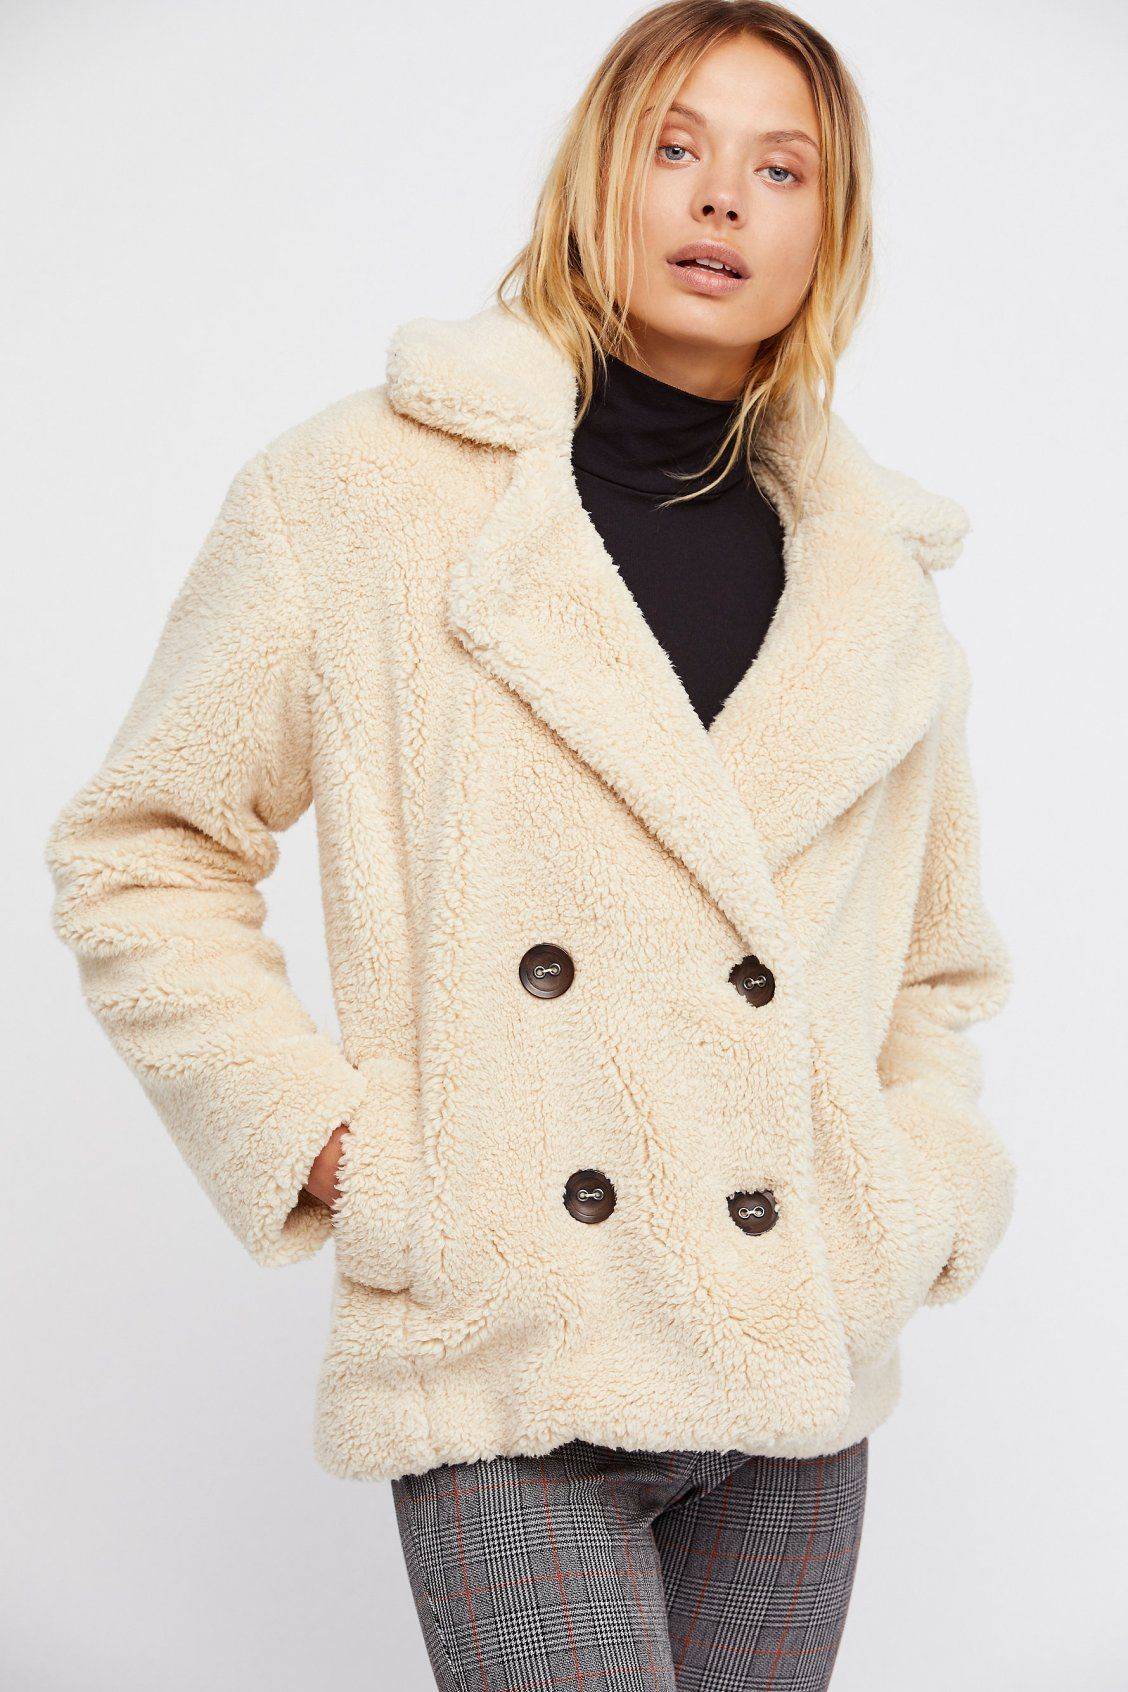 cabf97a5e1b2 Oatmeal Teddy Peacoat at Free People Clothing Boutique